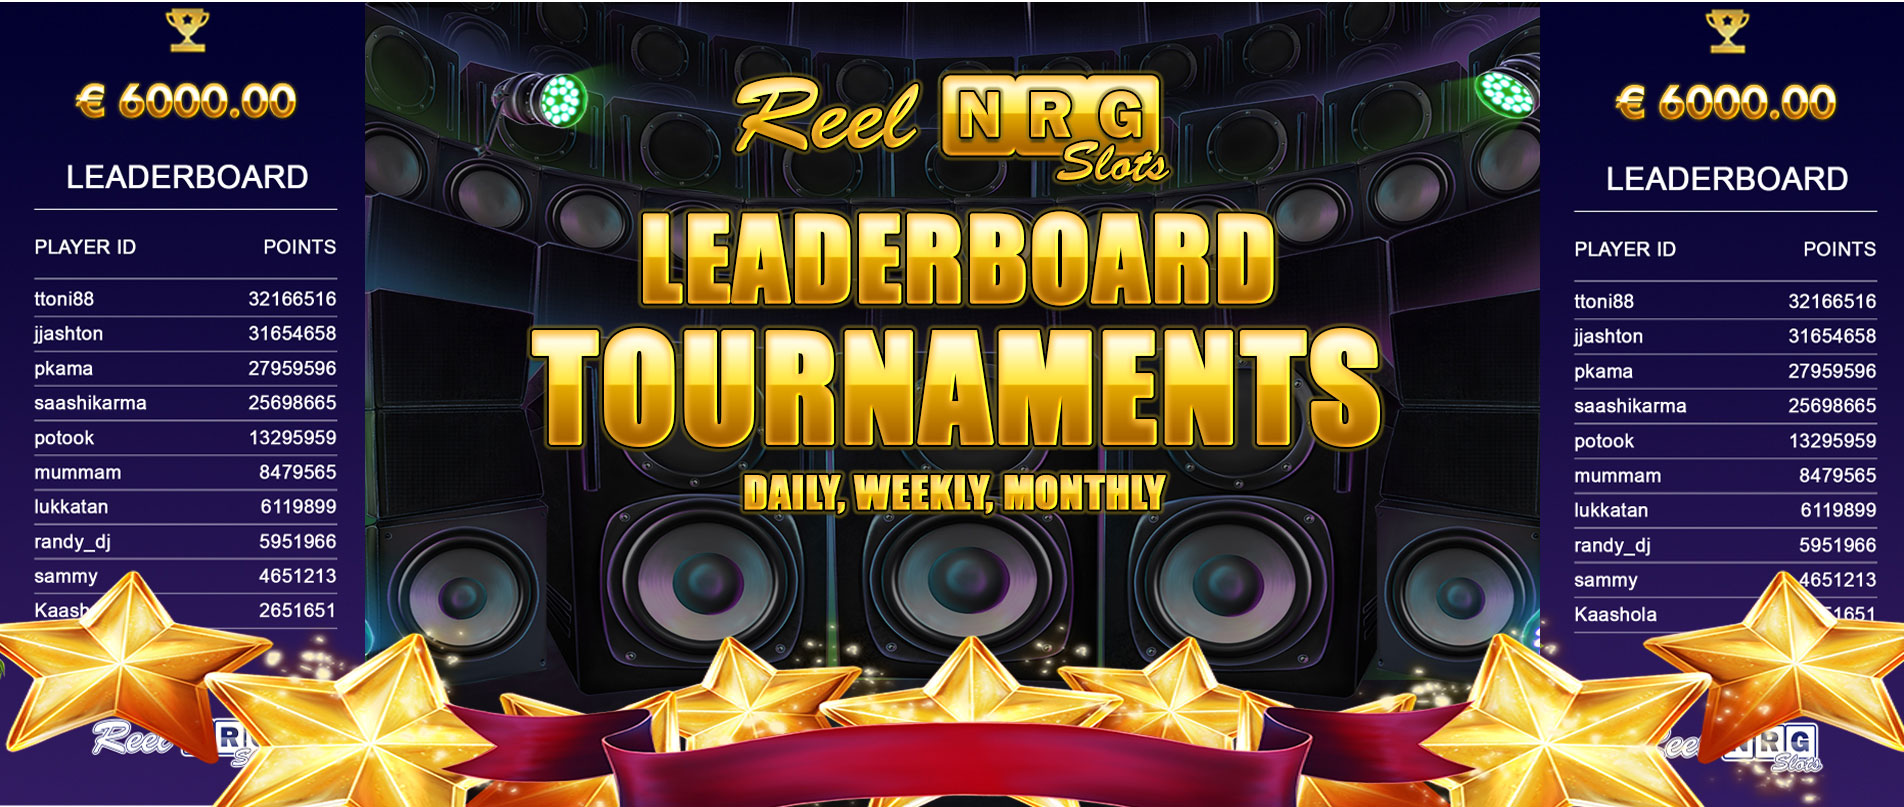 ReelNRG Launches Battle Reels Tournaments with Great Success